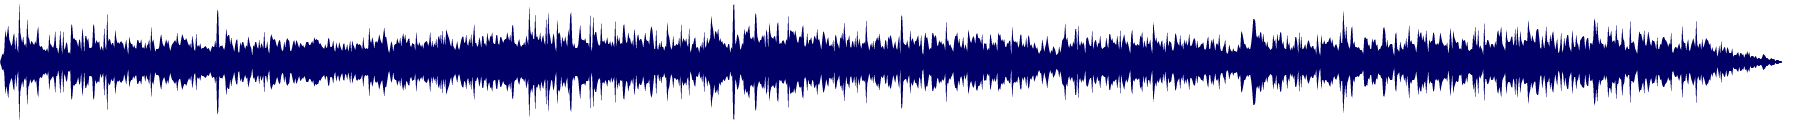 waveform of track #67997